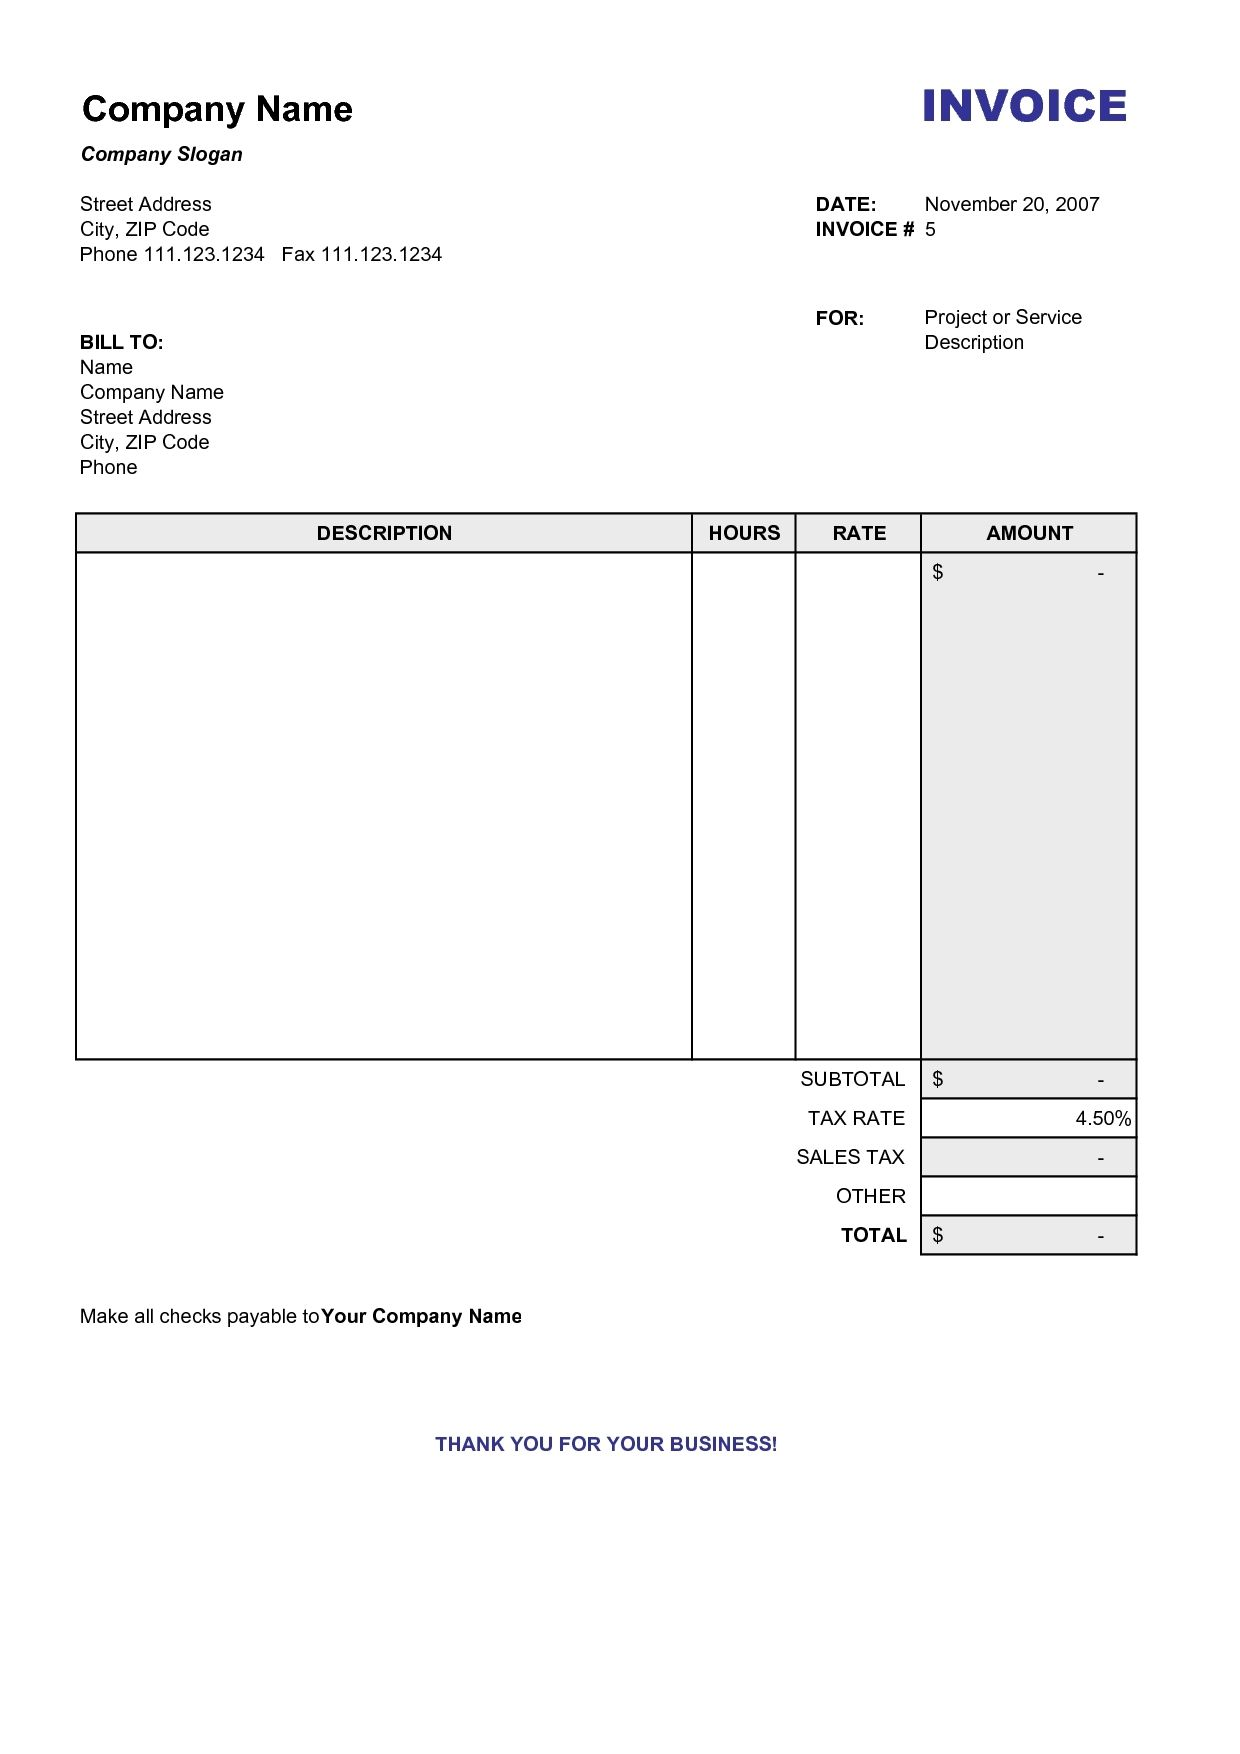 Copy Of A Blank Invoice Invoice Template Free Copy Of Blank - Word invoice template for service business